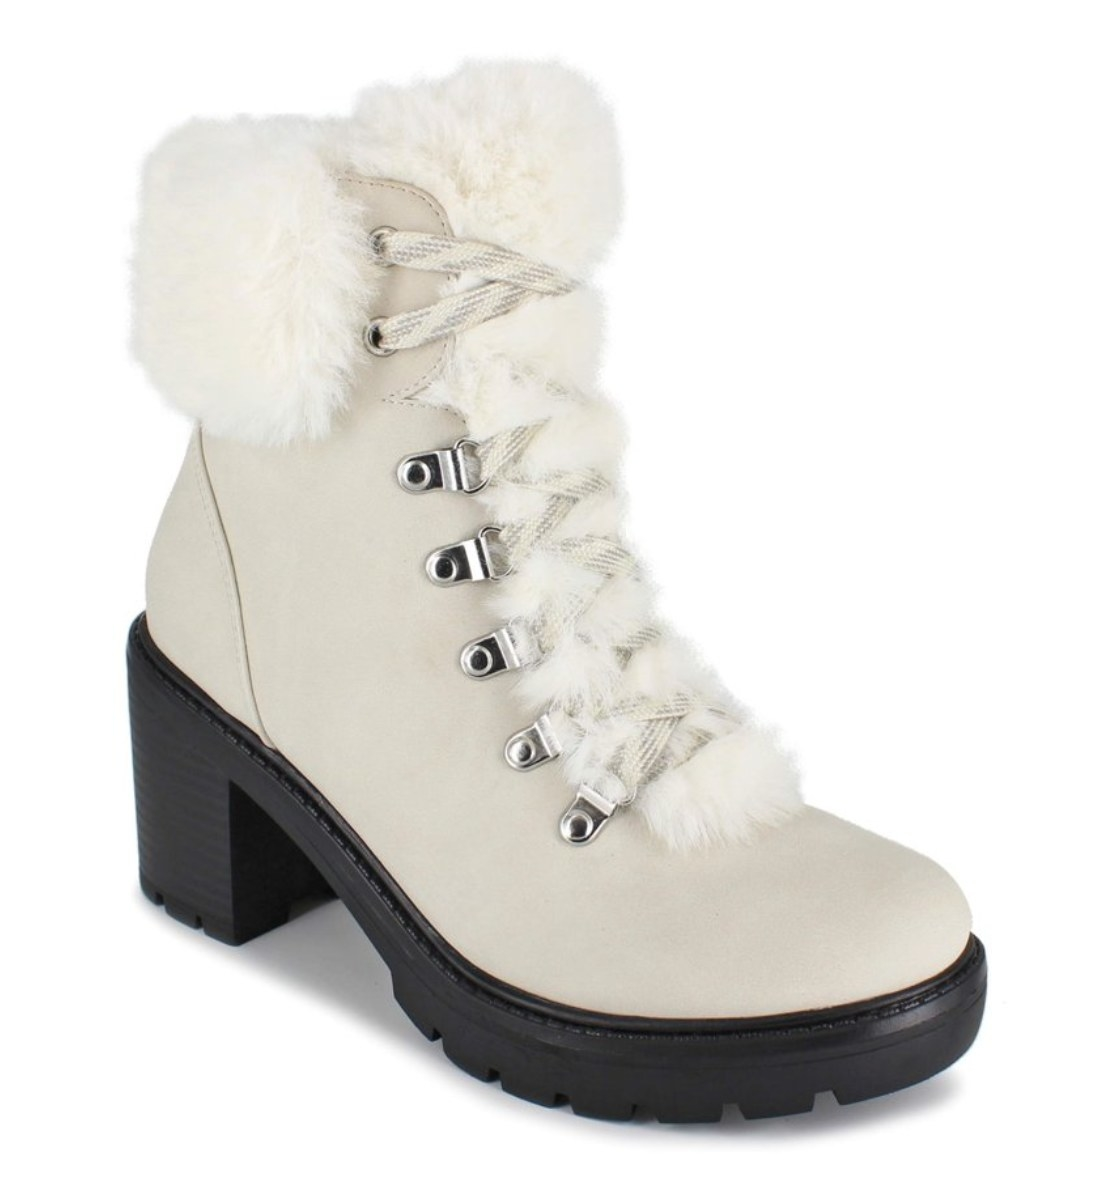 The white, fur-lined boots